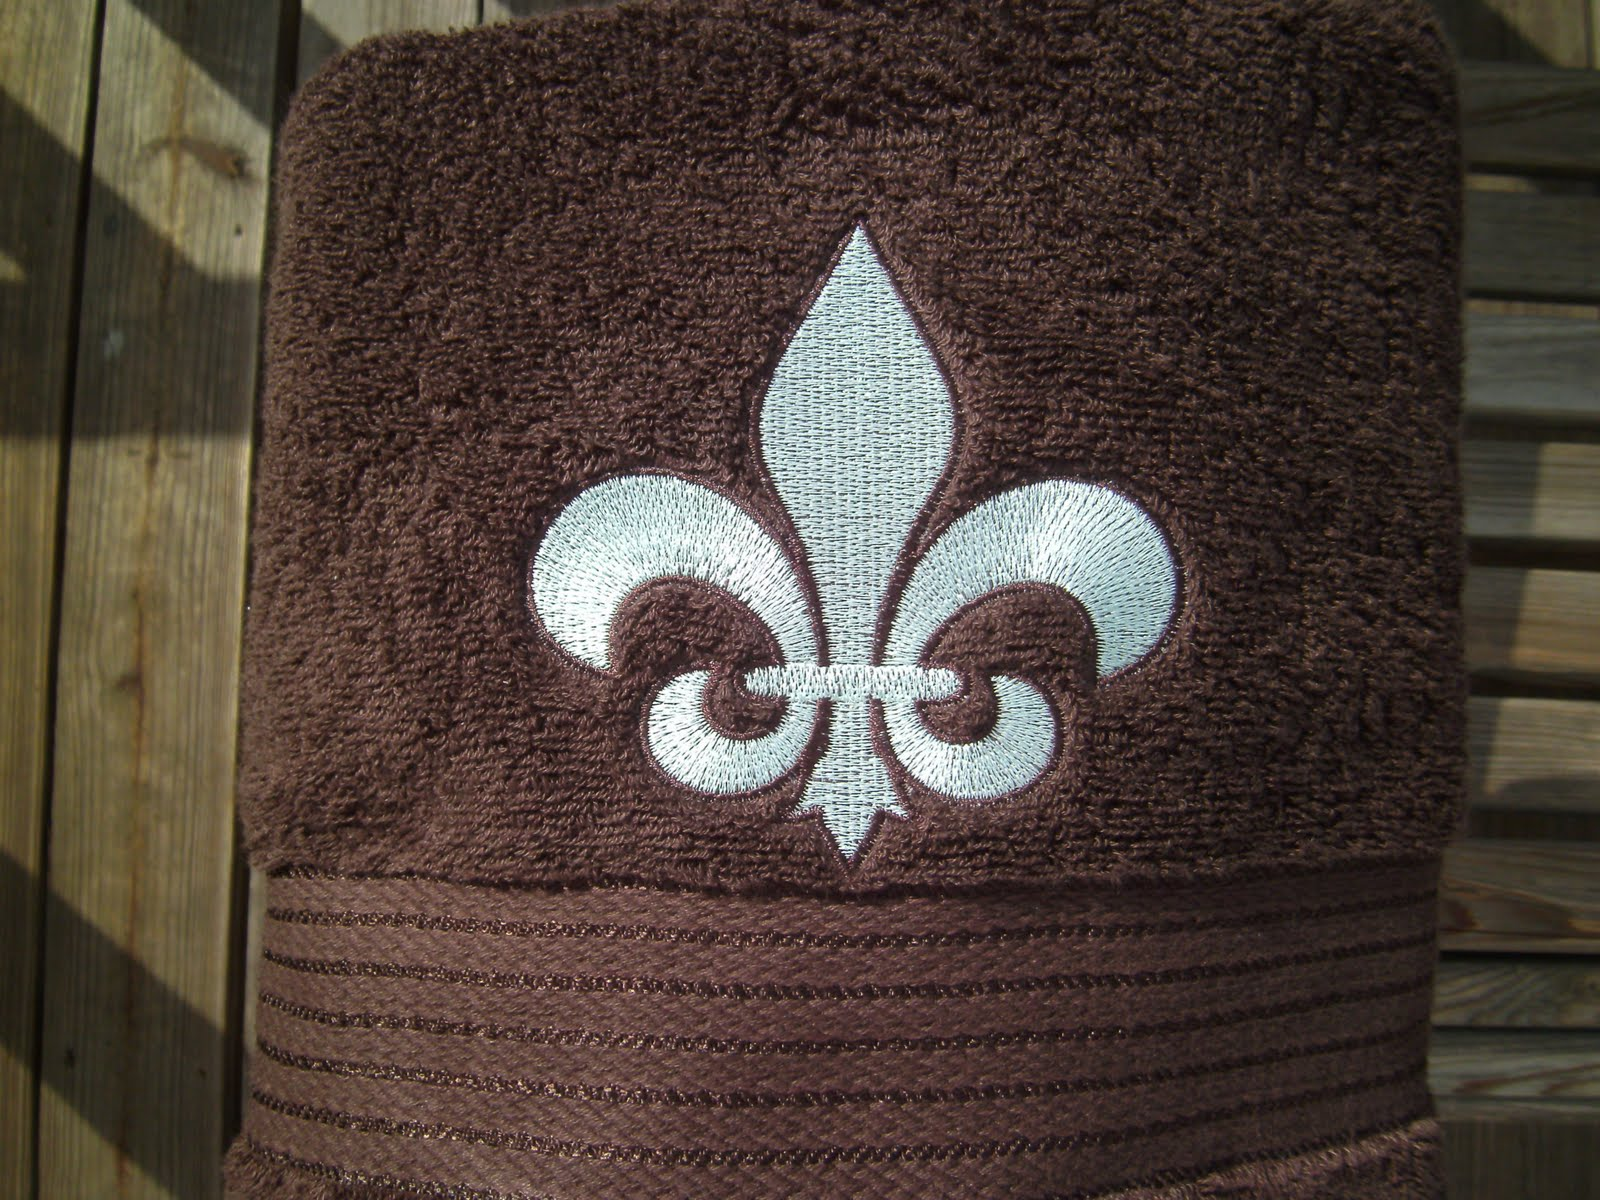 Fleur Di Lis Bathroom Quotgo For It Quot Embroidery Seafoam Green Fleur De Lis On A